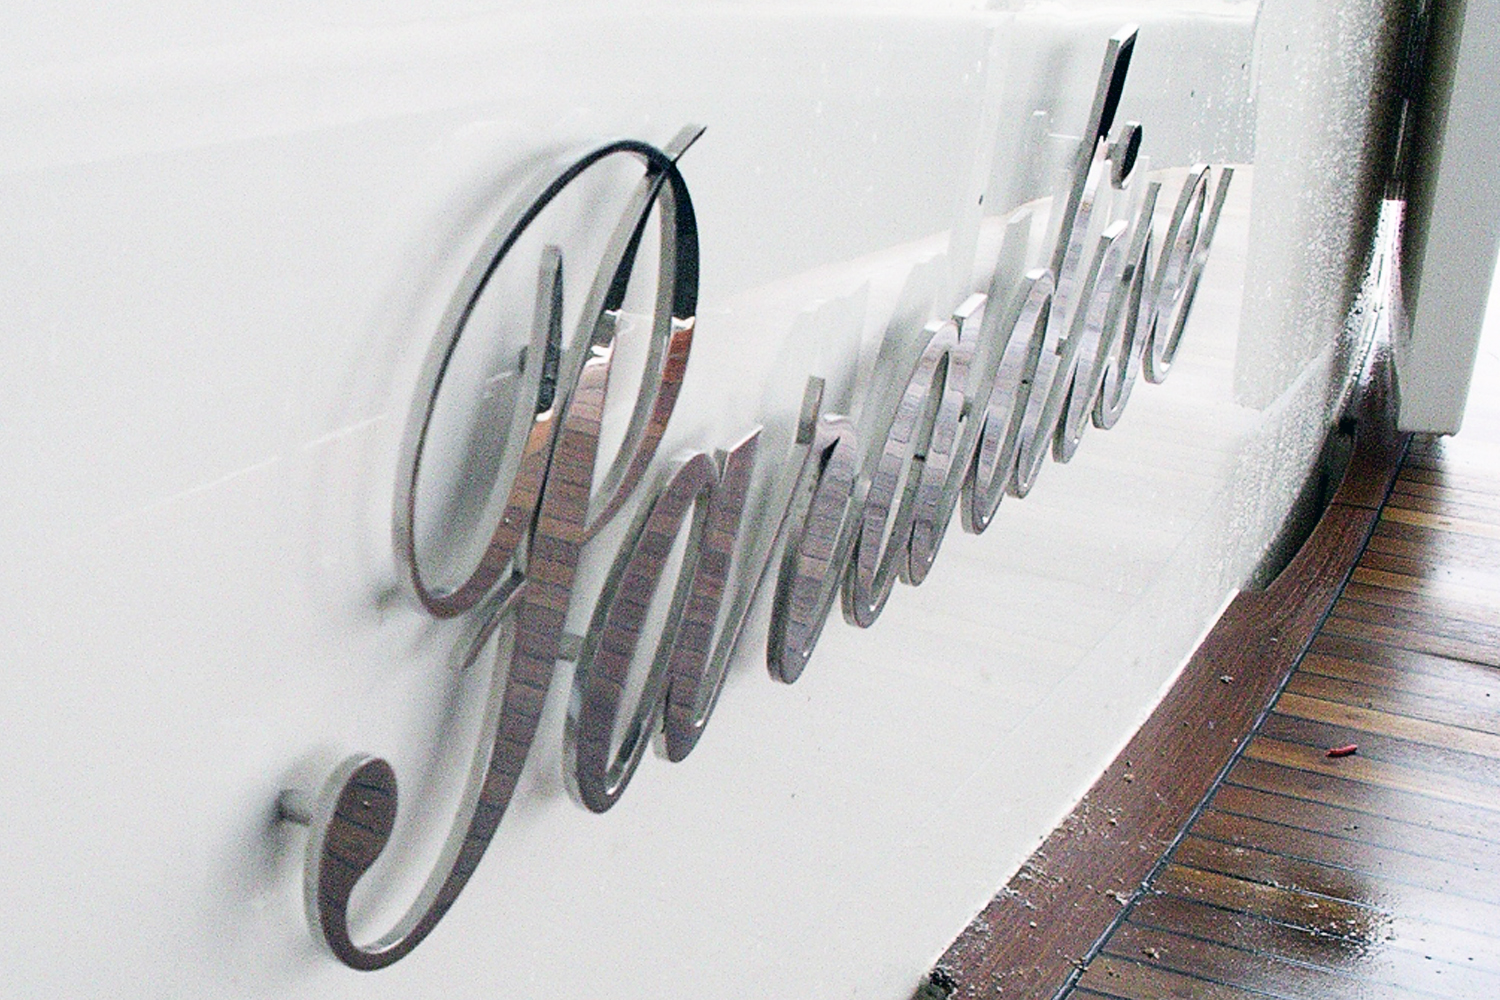 stainless steel boat names and lettering